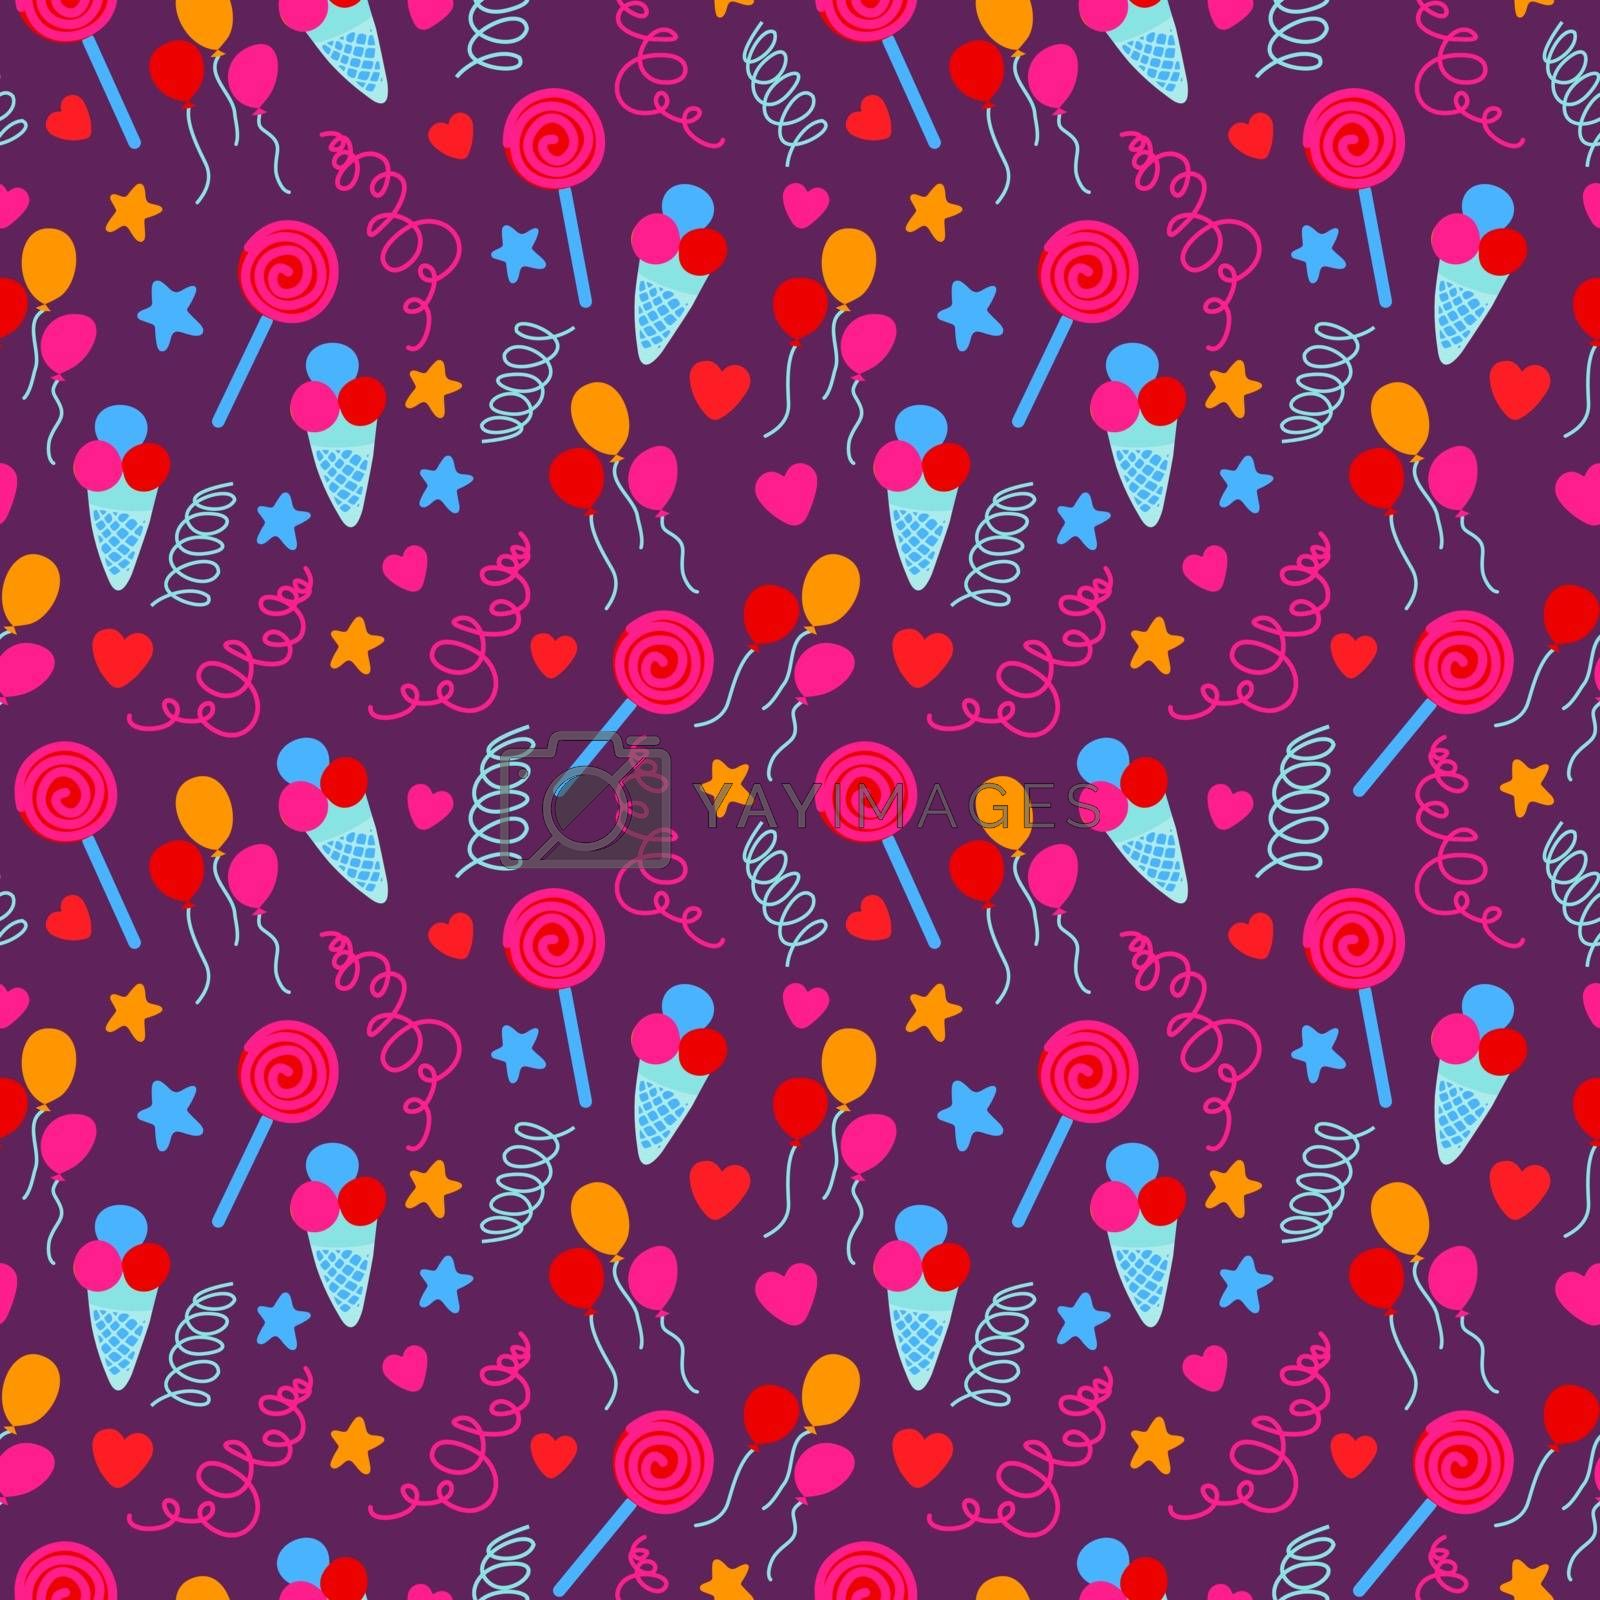 Seamless pattern with birthday party decorative icons set with birthday cake, ice cream, confetti and assorted colorful lollipops in modern flat style. Vector illustration